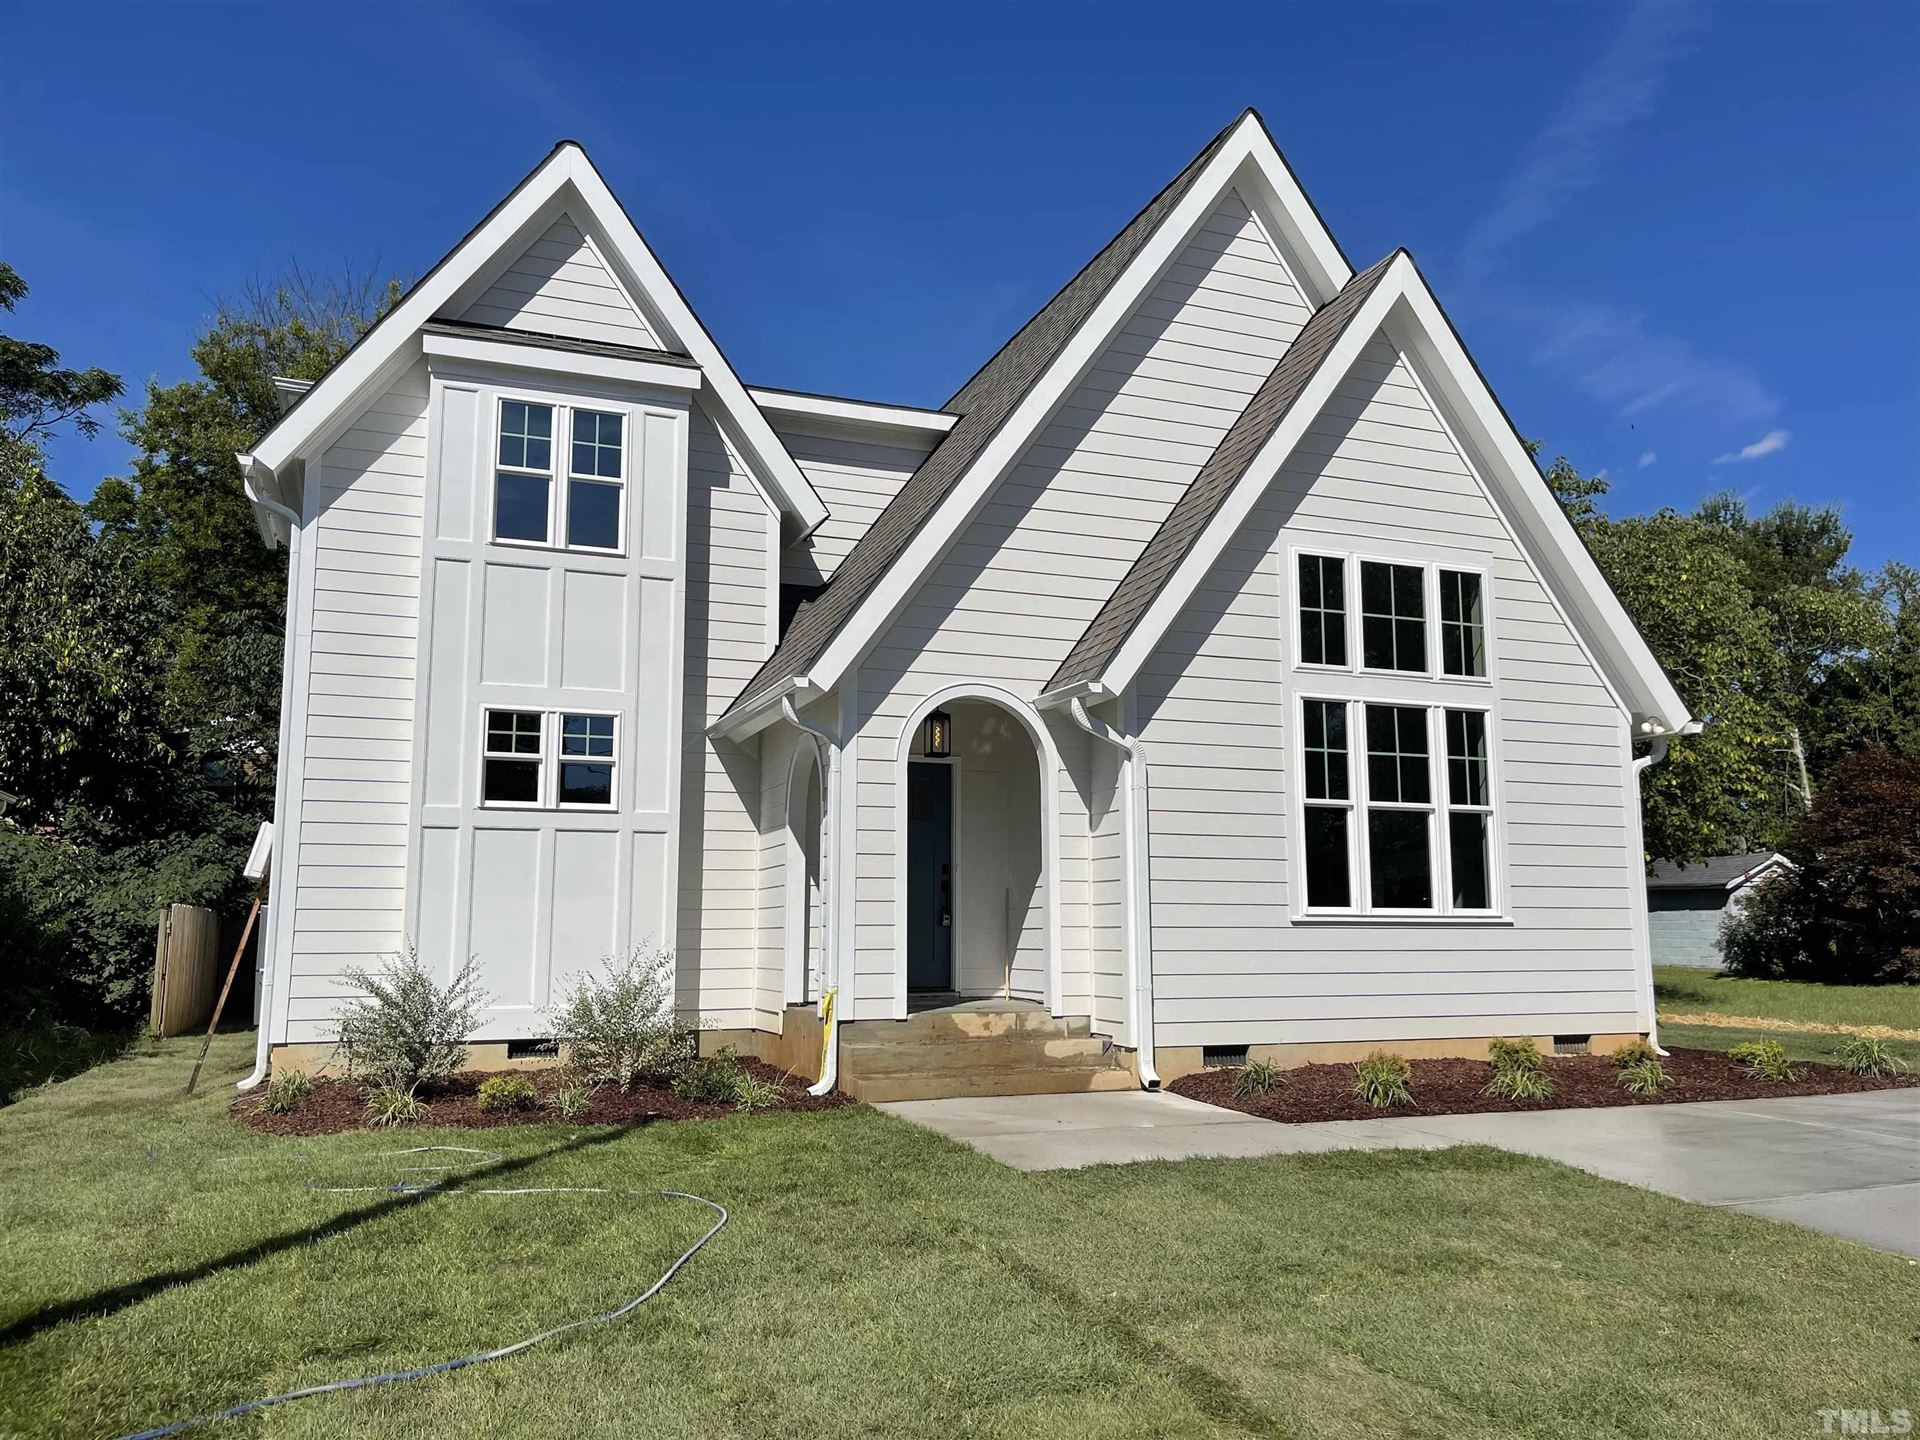 Photo of 211 Bledsoe Avenue, Raleigh, NC 27601 (MLS # 2382255)